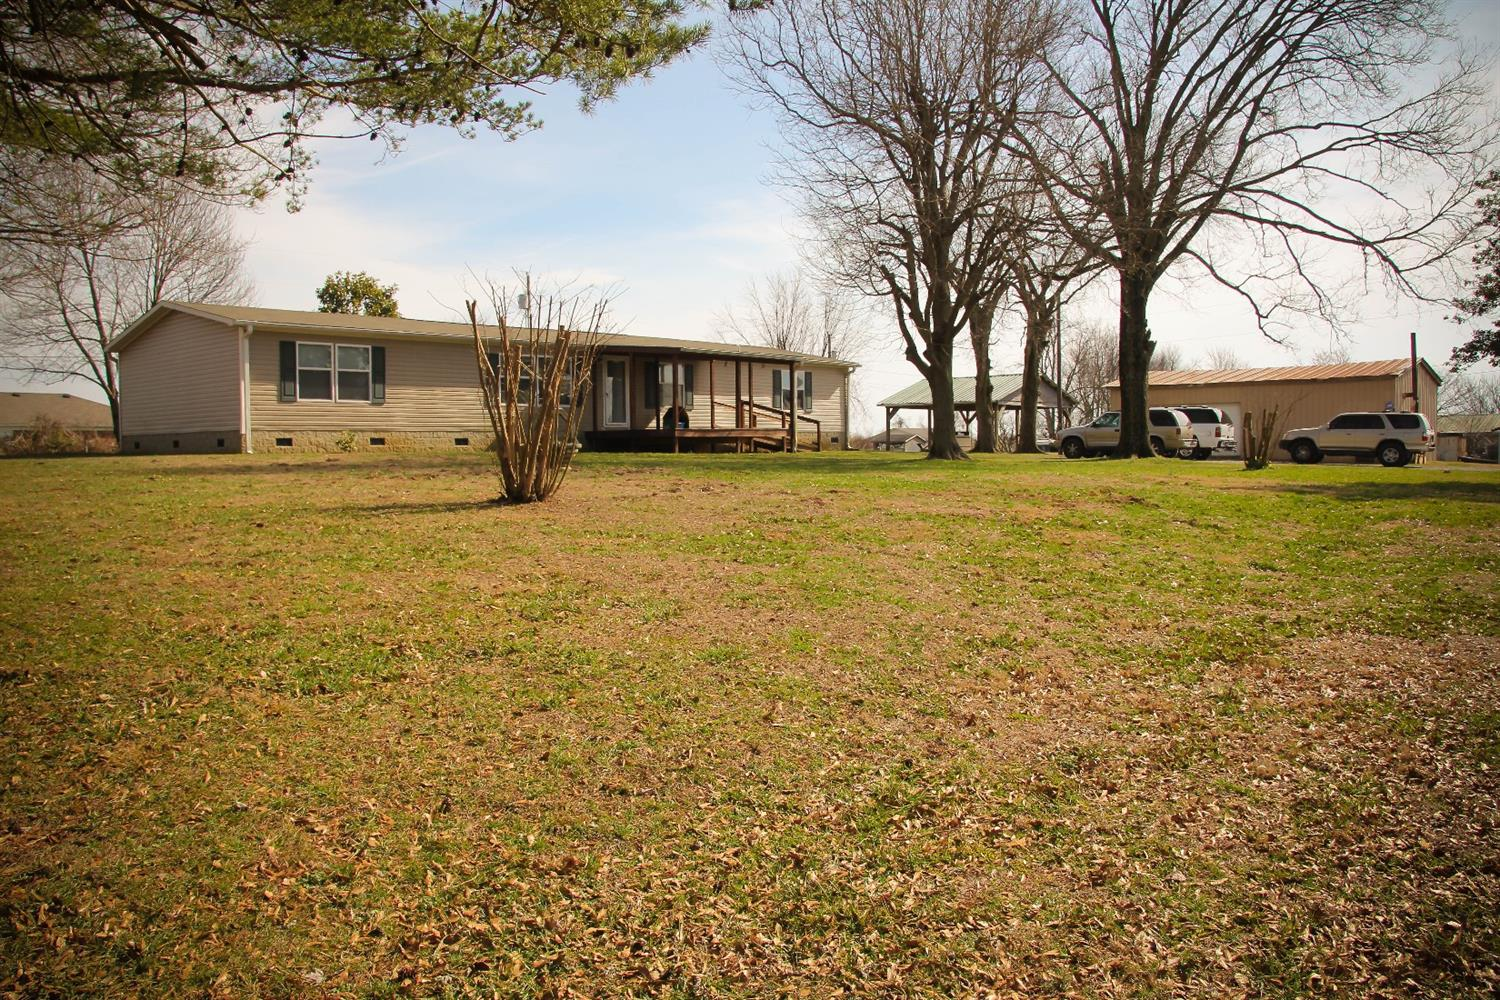 Home For Sale at 4227 Danville Rd, Lancaster, KY 40444